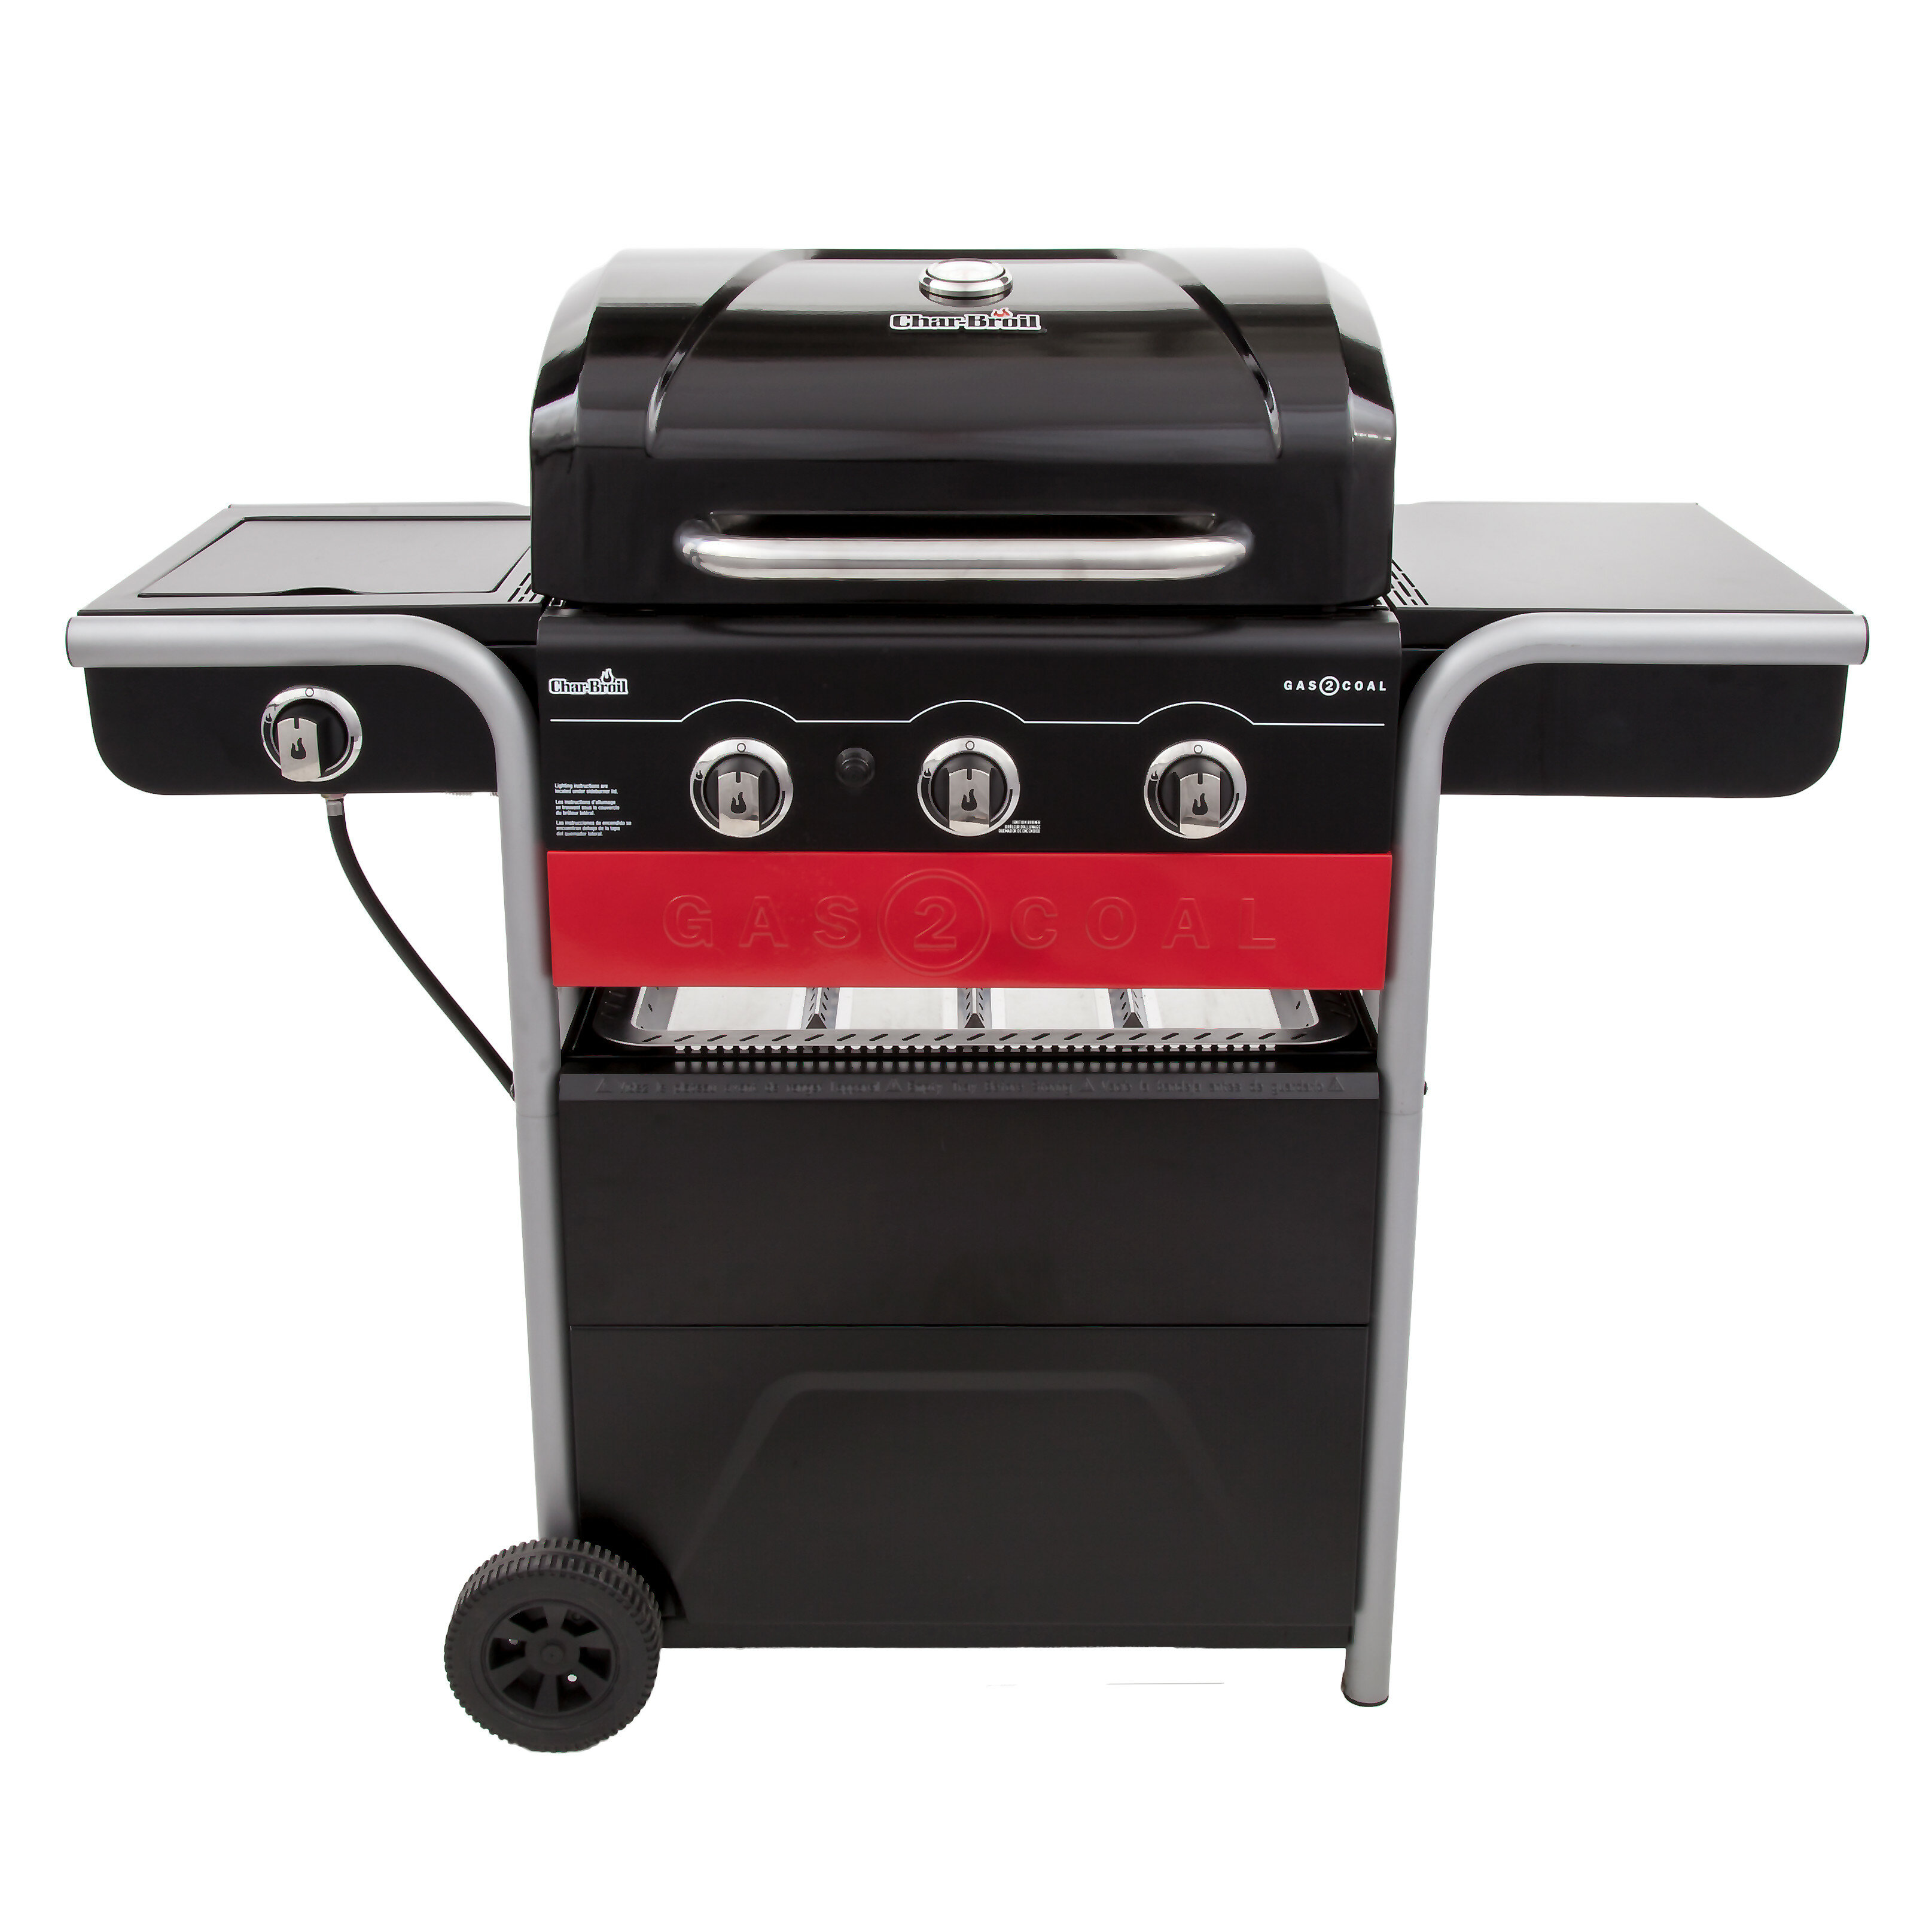 Charbroil Gas2coal Charcoal And 3 Burner Propane Gas Grill Reviews Wayfair